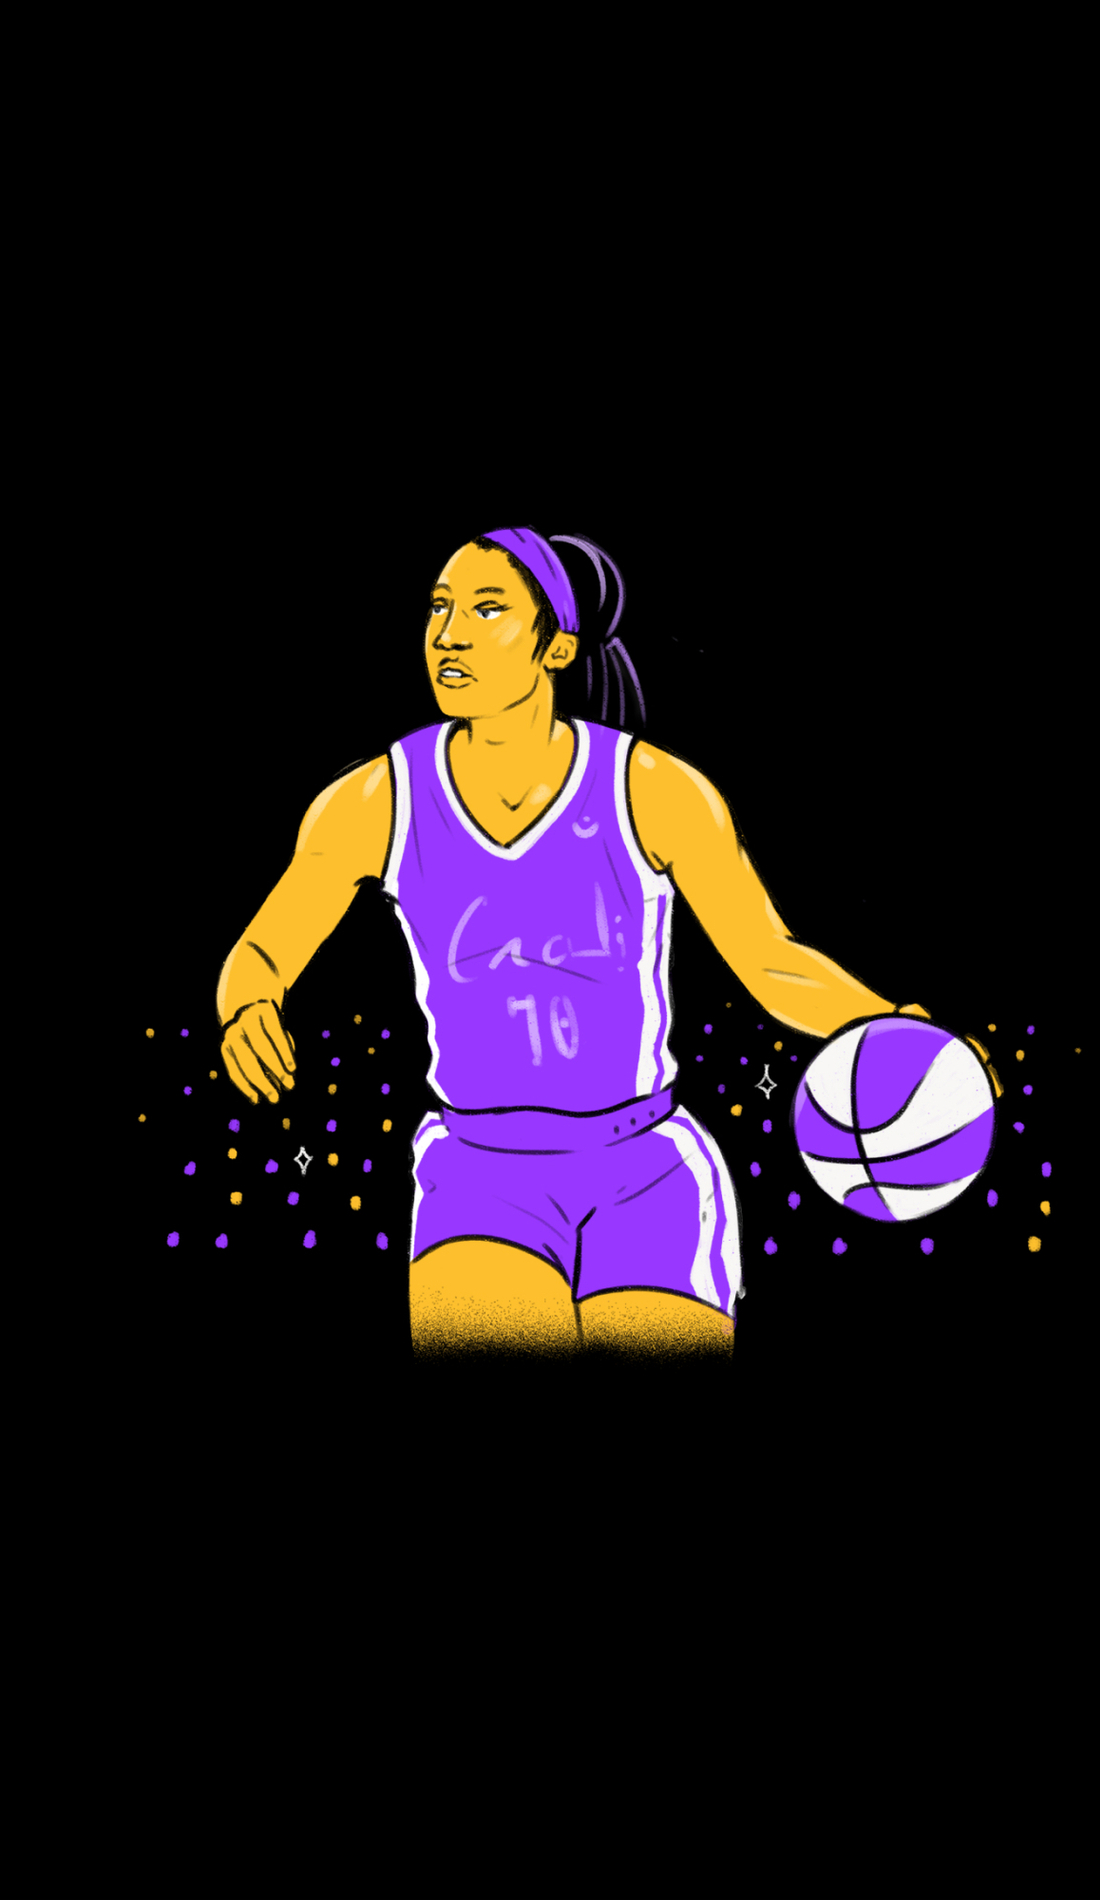 A Towson Tigers Womens Basketball live event